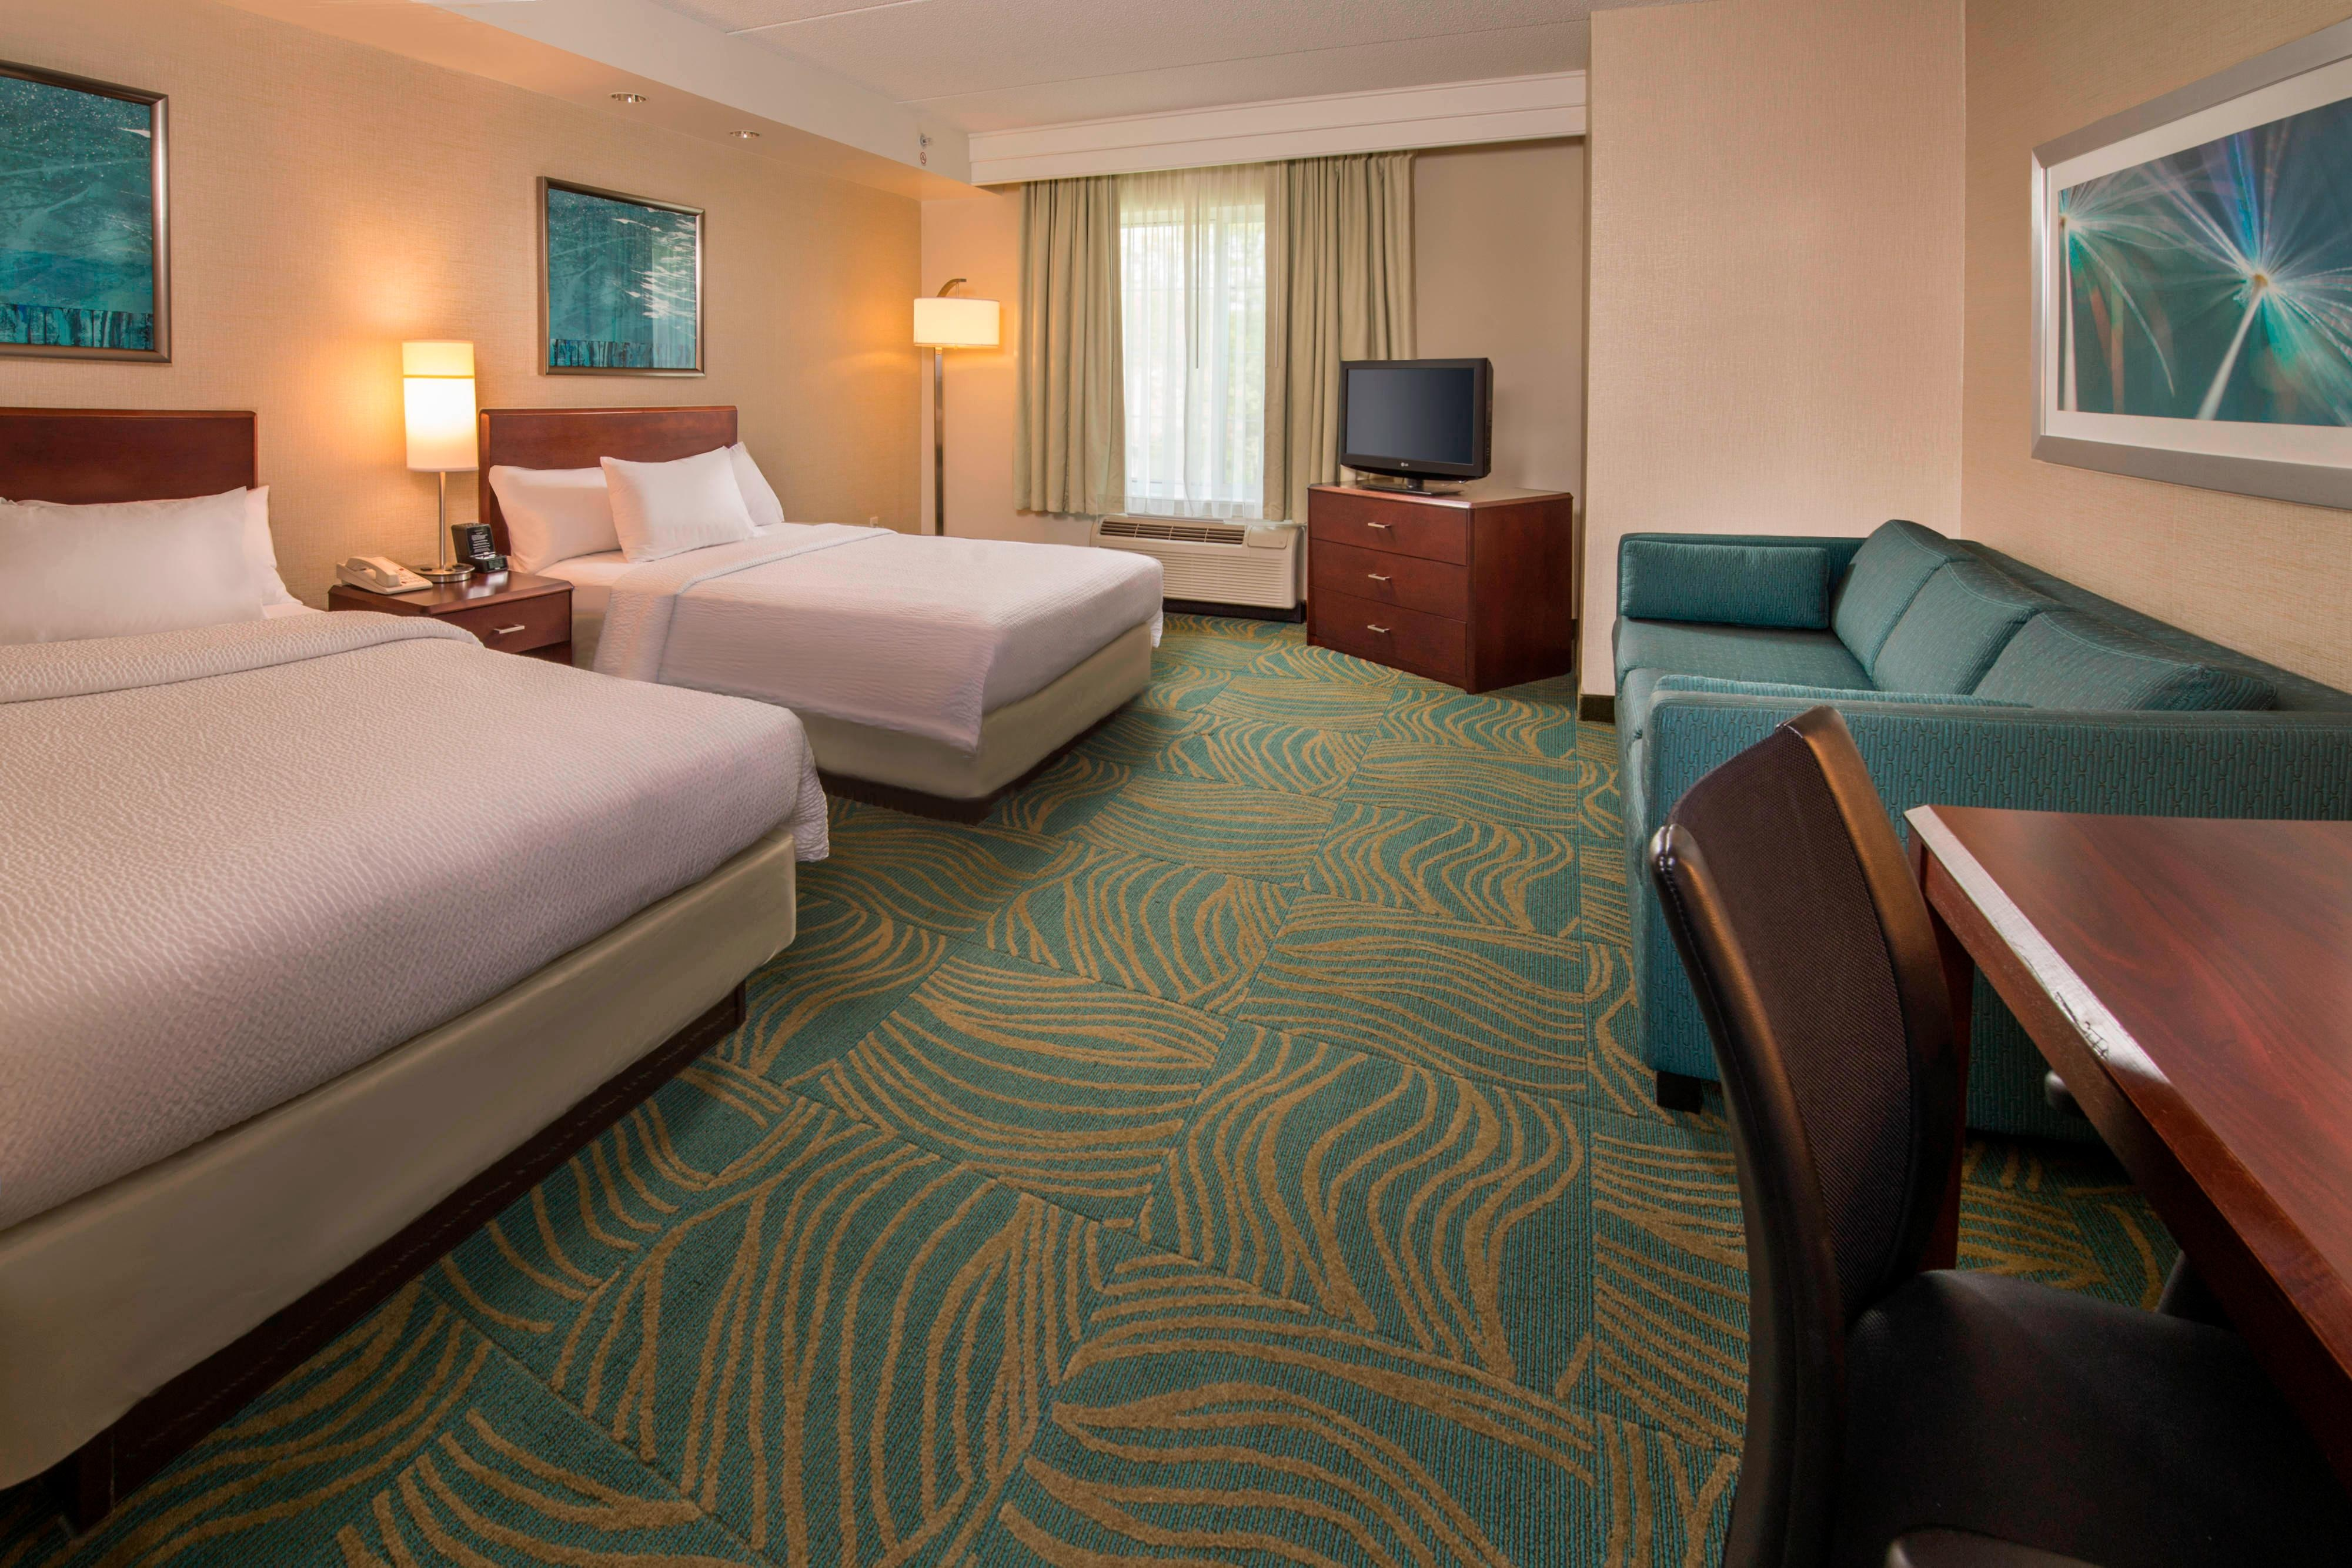 Hotels in State College, PA | SpringHill Suites State College